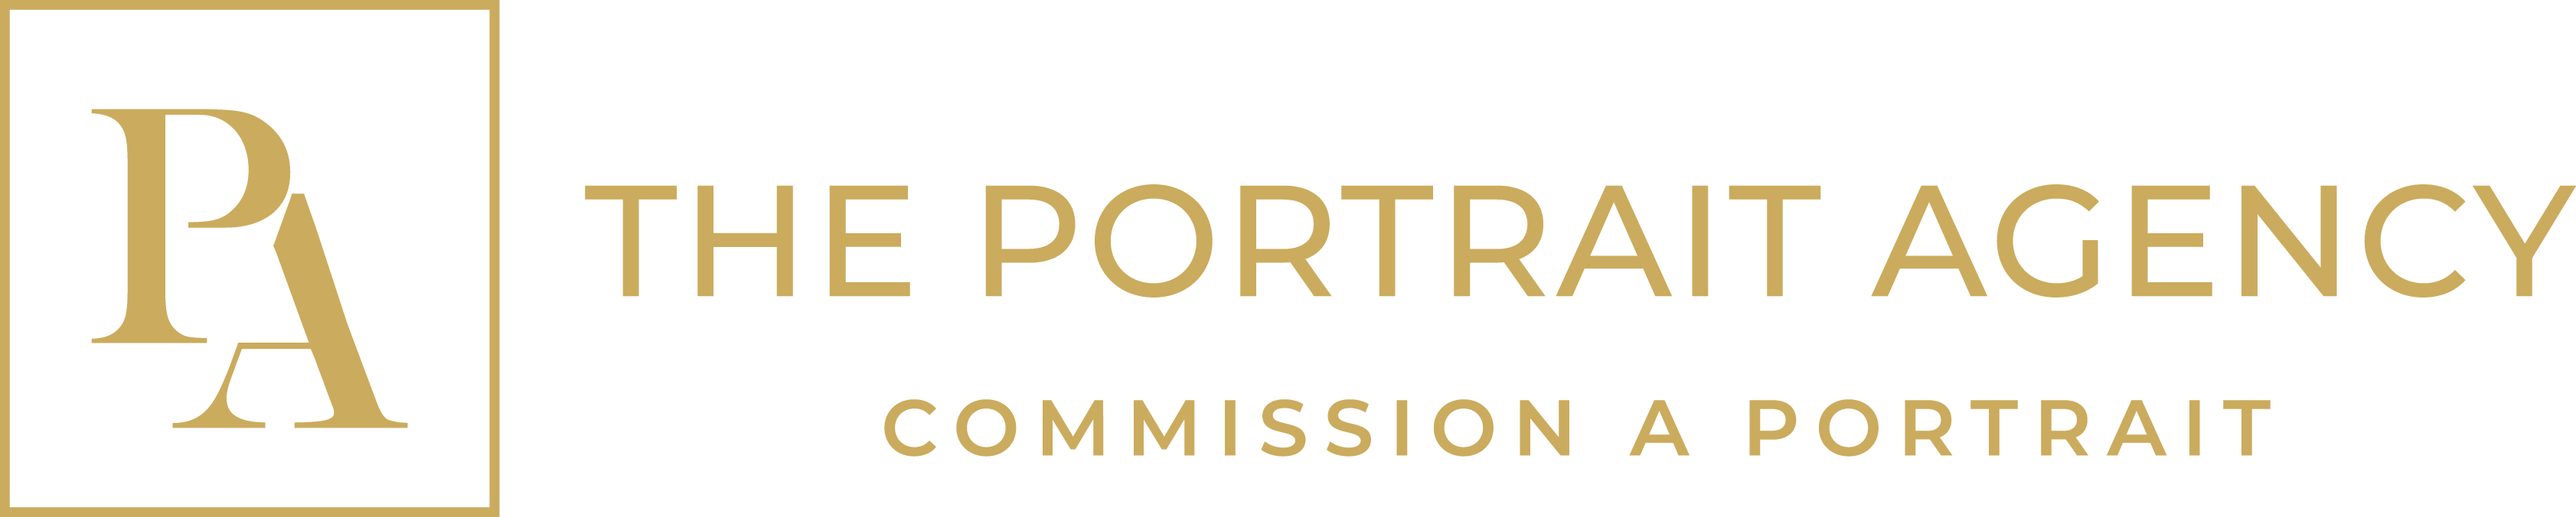 The Portrait Agency